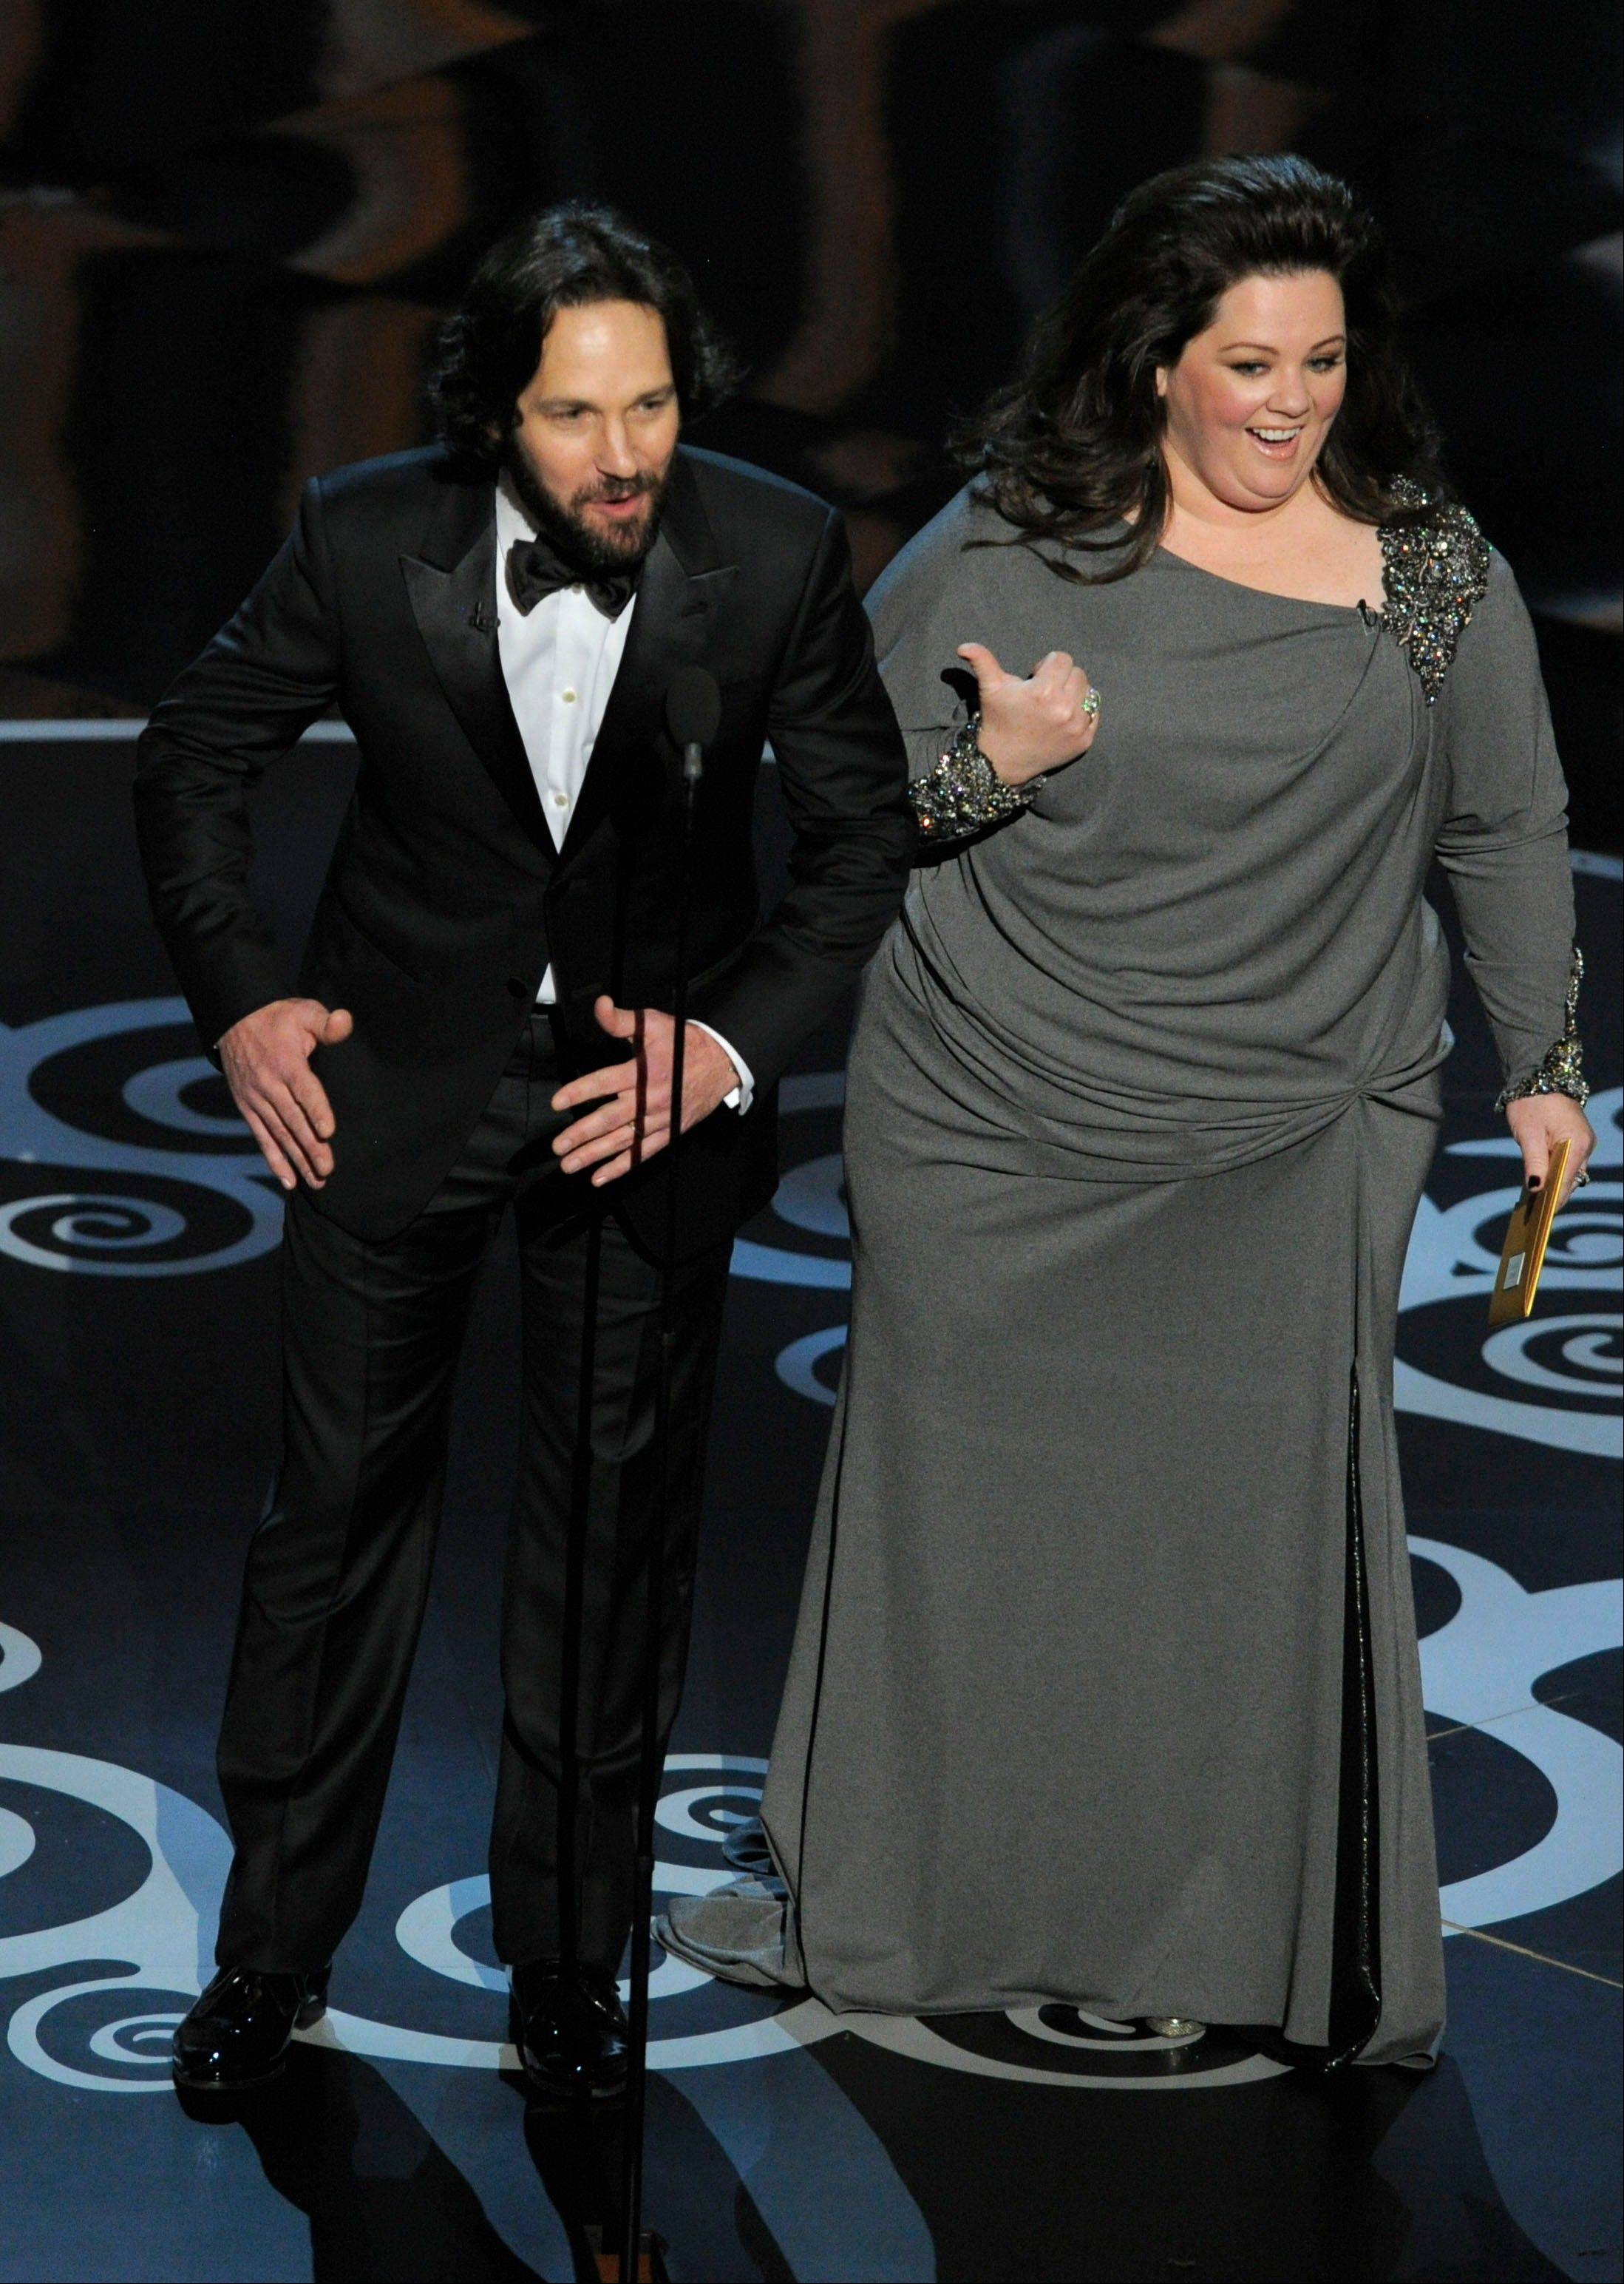 Actors Paul Rudd, left, and Melissa McCarthy present the animation awards at Sunday's Oscars.